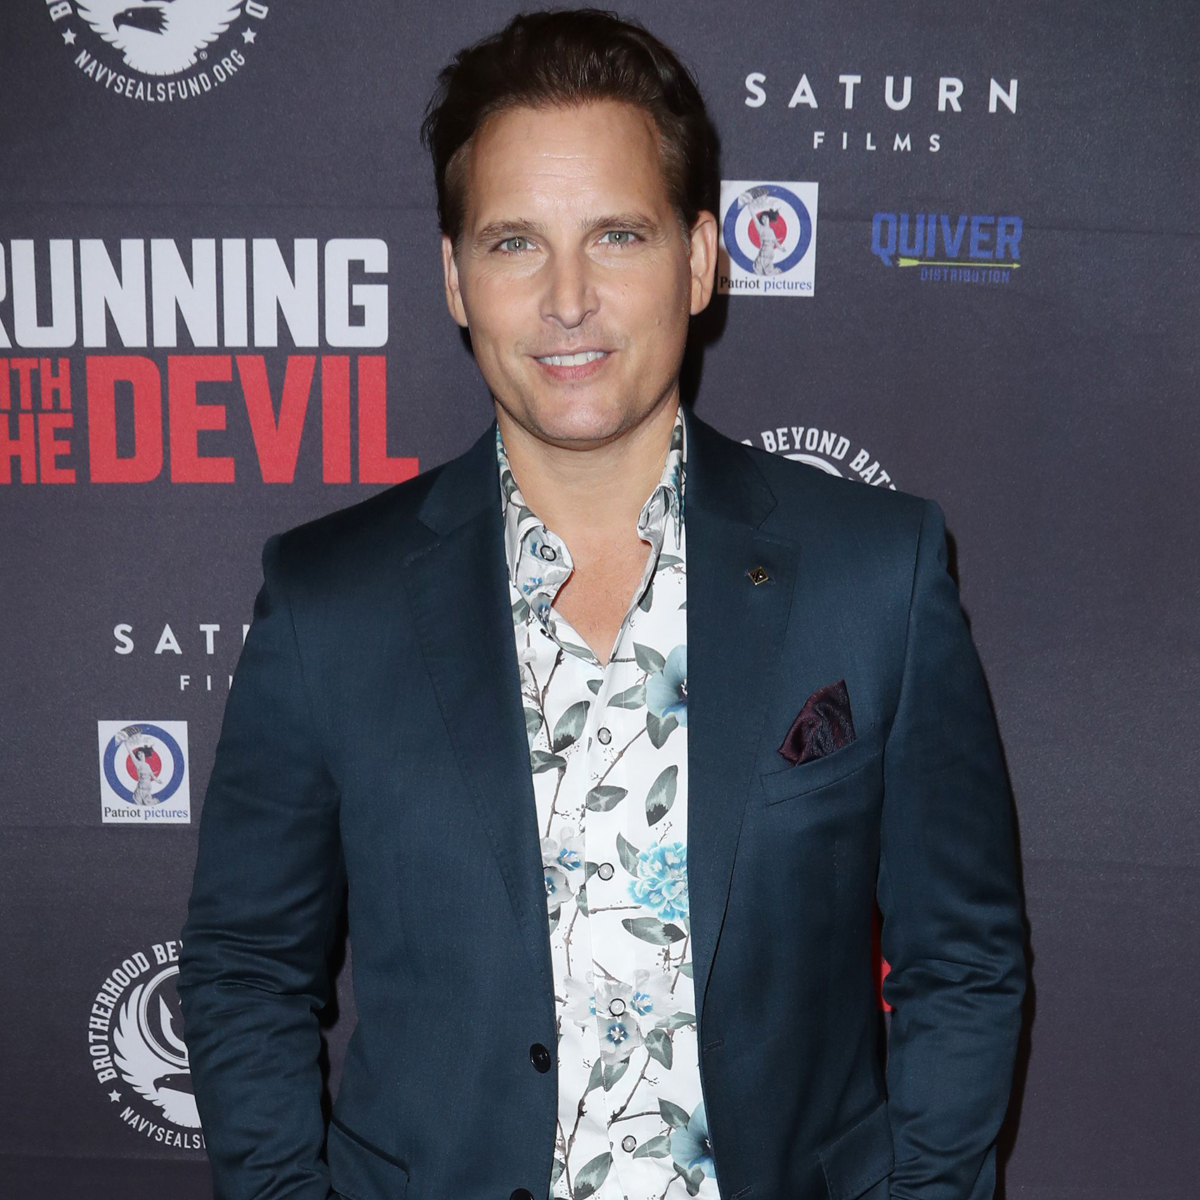 You Won't Believe What Skill Peter Facinelli Learned During Quarantine